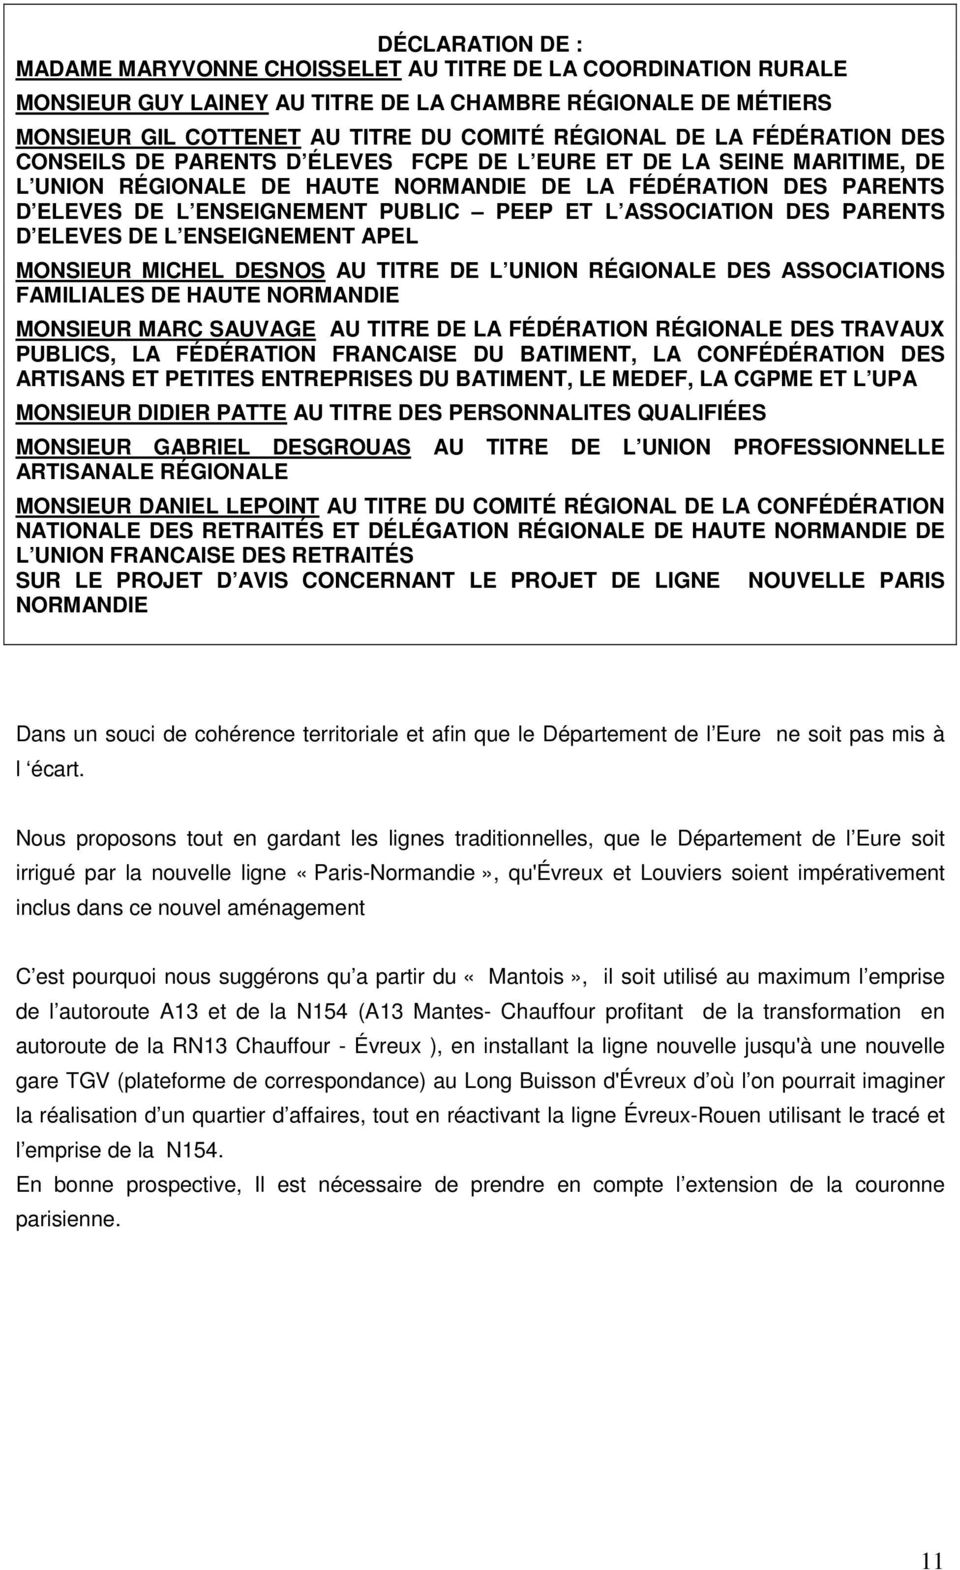 ASSOCIATION DES PARENTS D ELEVES DE L ENSEIGNEMENT APEL MONSIEUR MICHEL DESNOS AU TITRE DE L UNION RÉGIONALE DES ASSOCIATIONS FAMILIALES DE HAUTE NORMANDIE MONSIEUR MARC SAUVAGE AU TITRE DE LA